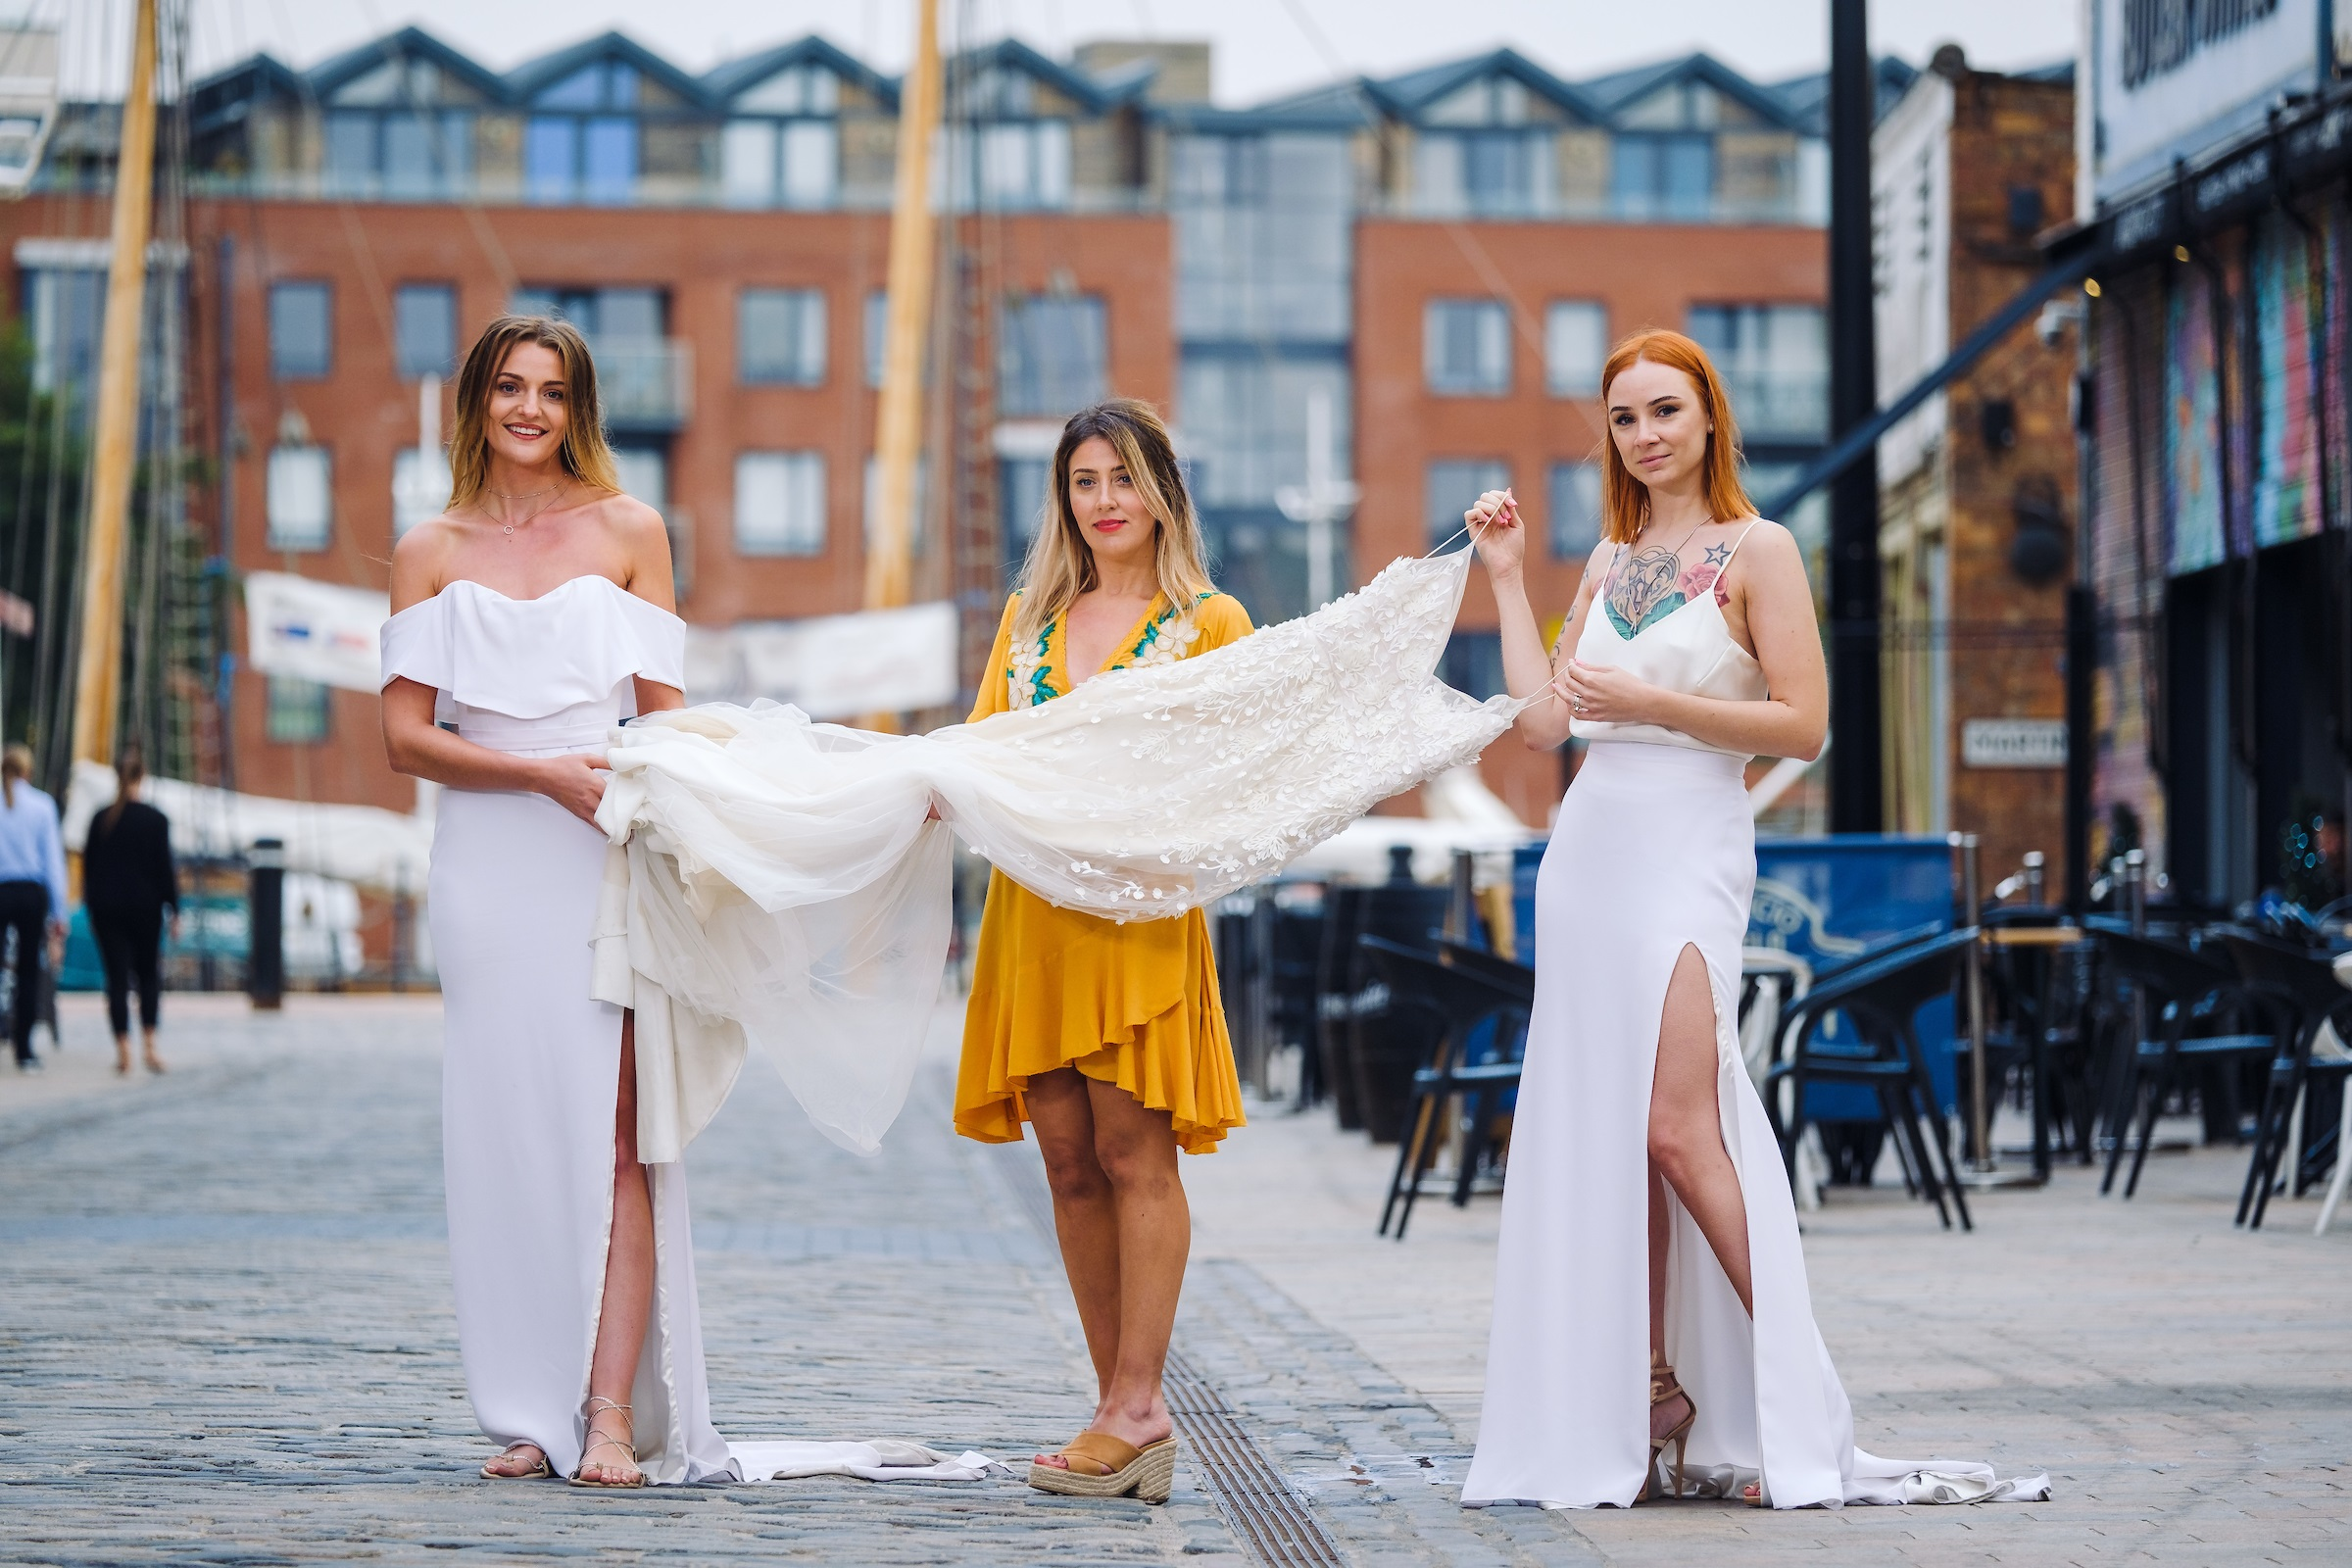 Ghost Orchid Bride owner Katey Headley, centre, with past customers Joanne Hill, left, and Hayley Sykes, in Hull's ever-evolving Fruit Market waterfront quarter.